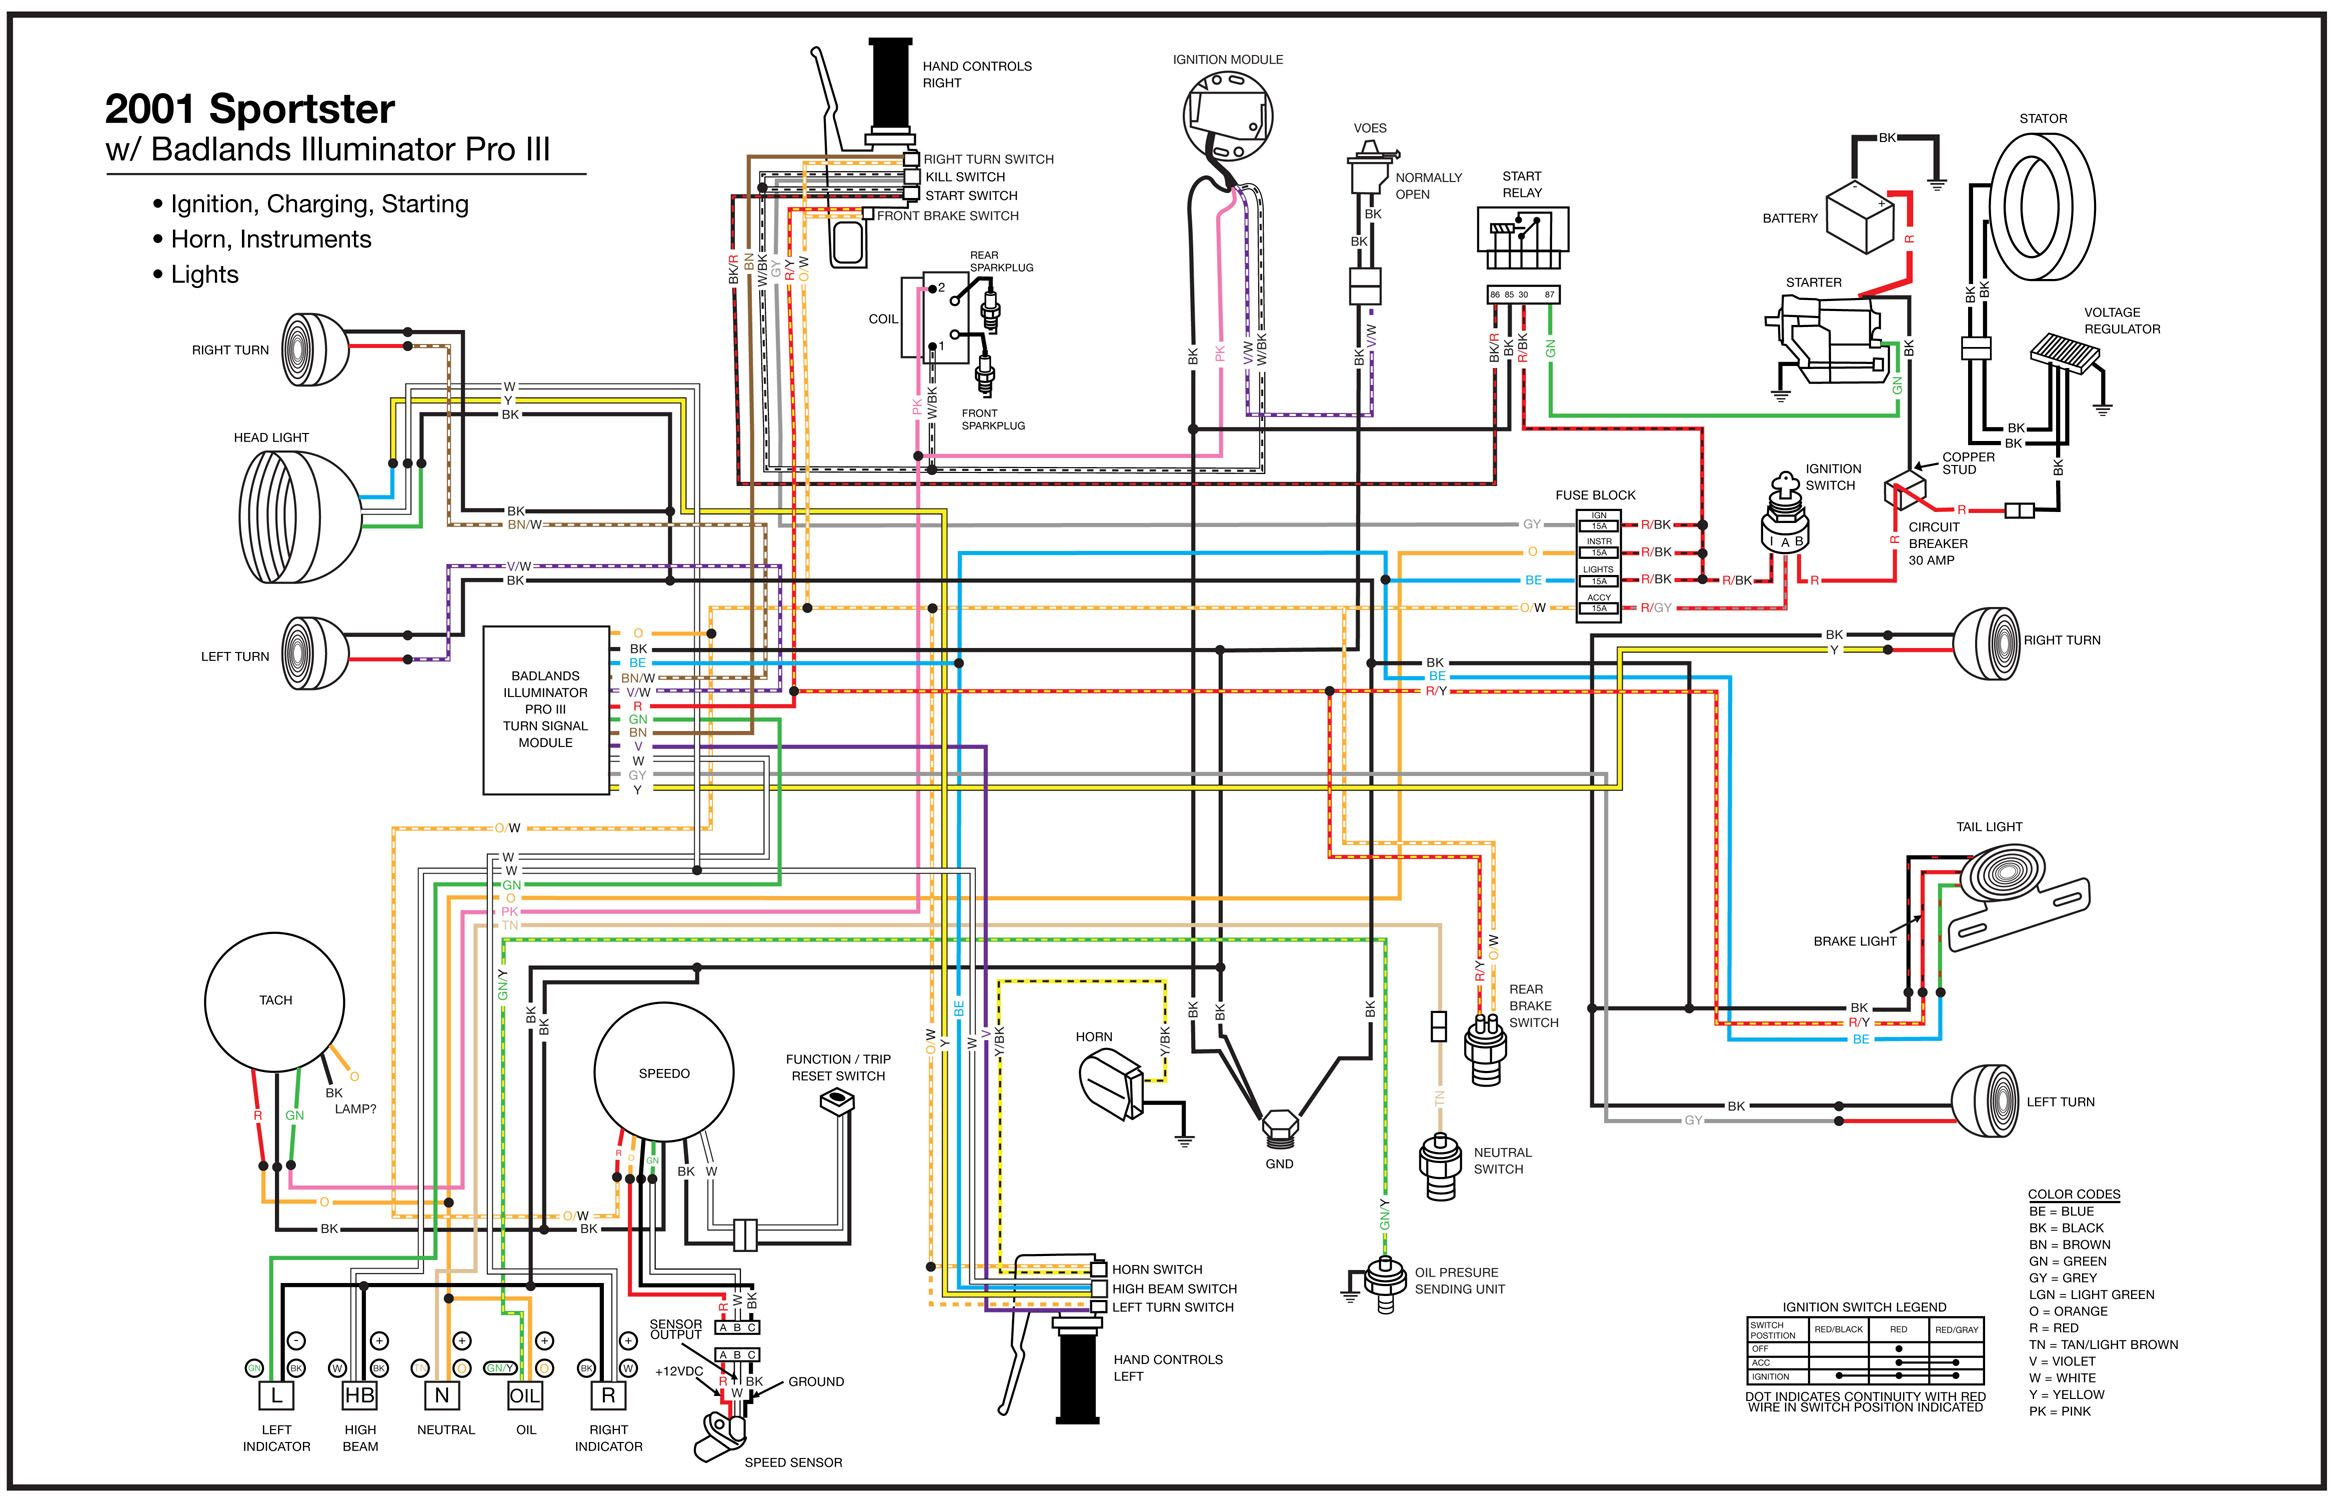 c7fe5056f4c8a8fa9386de3a912fa987 rigid_evo sportster illuminator pro 3 wiring diagram the Battery Cross Section Diagram at honlapkeszites.co